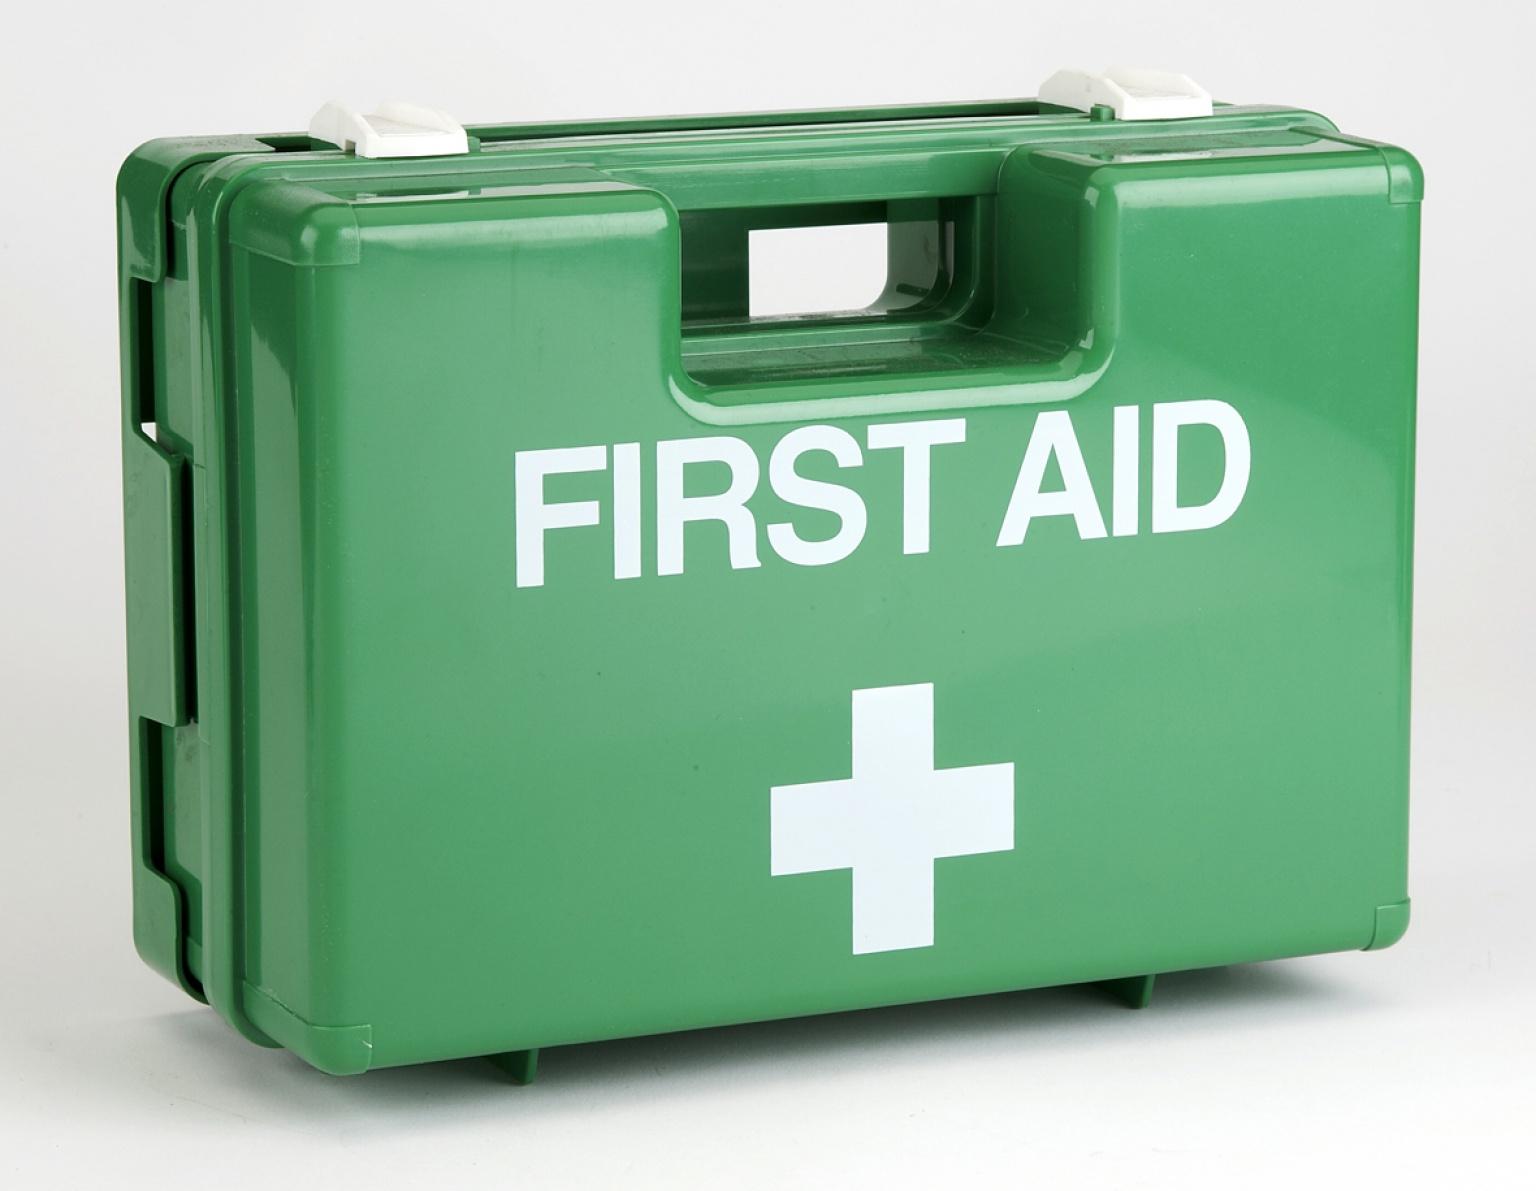 project first aid kit essay